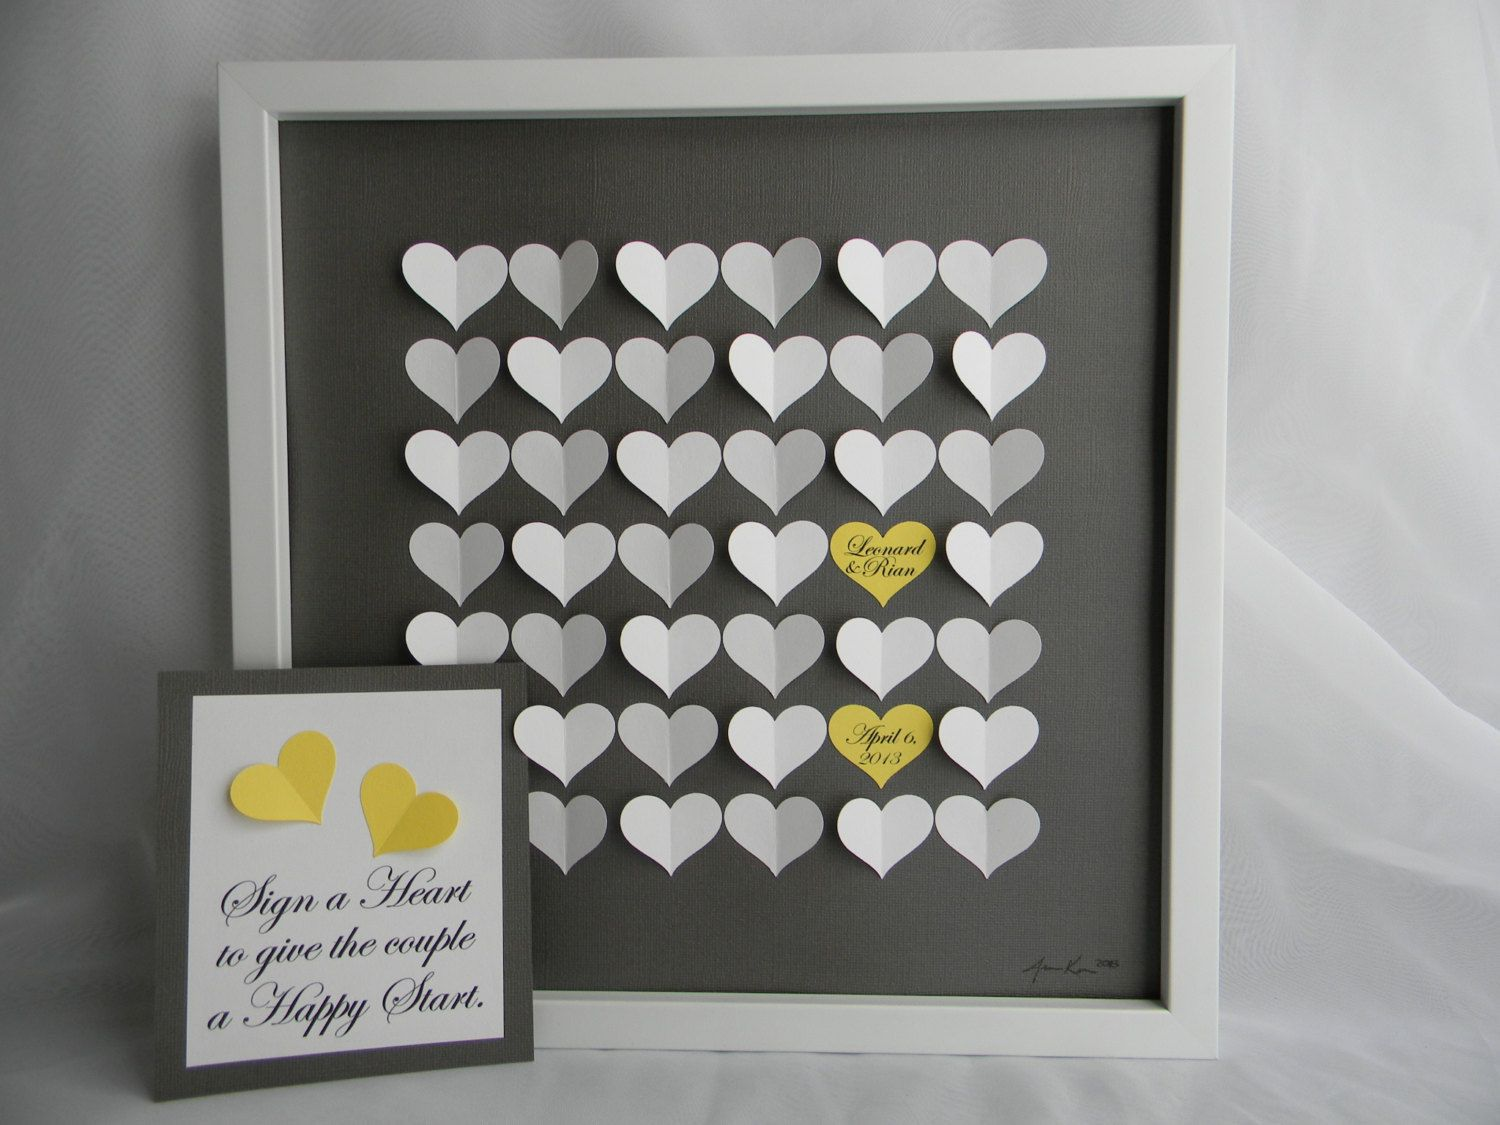 Wedding Guest Book Alternative Paper Hearts Lovely Bridal Shower Gift Modern Guestbook For The Bride And Groom Great 79 95 Via Etsy